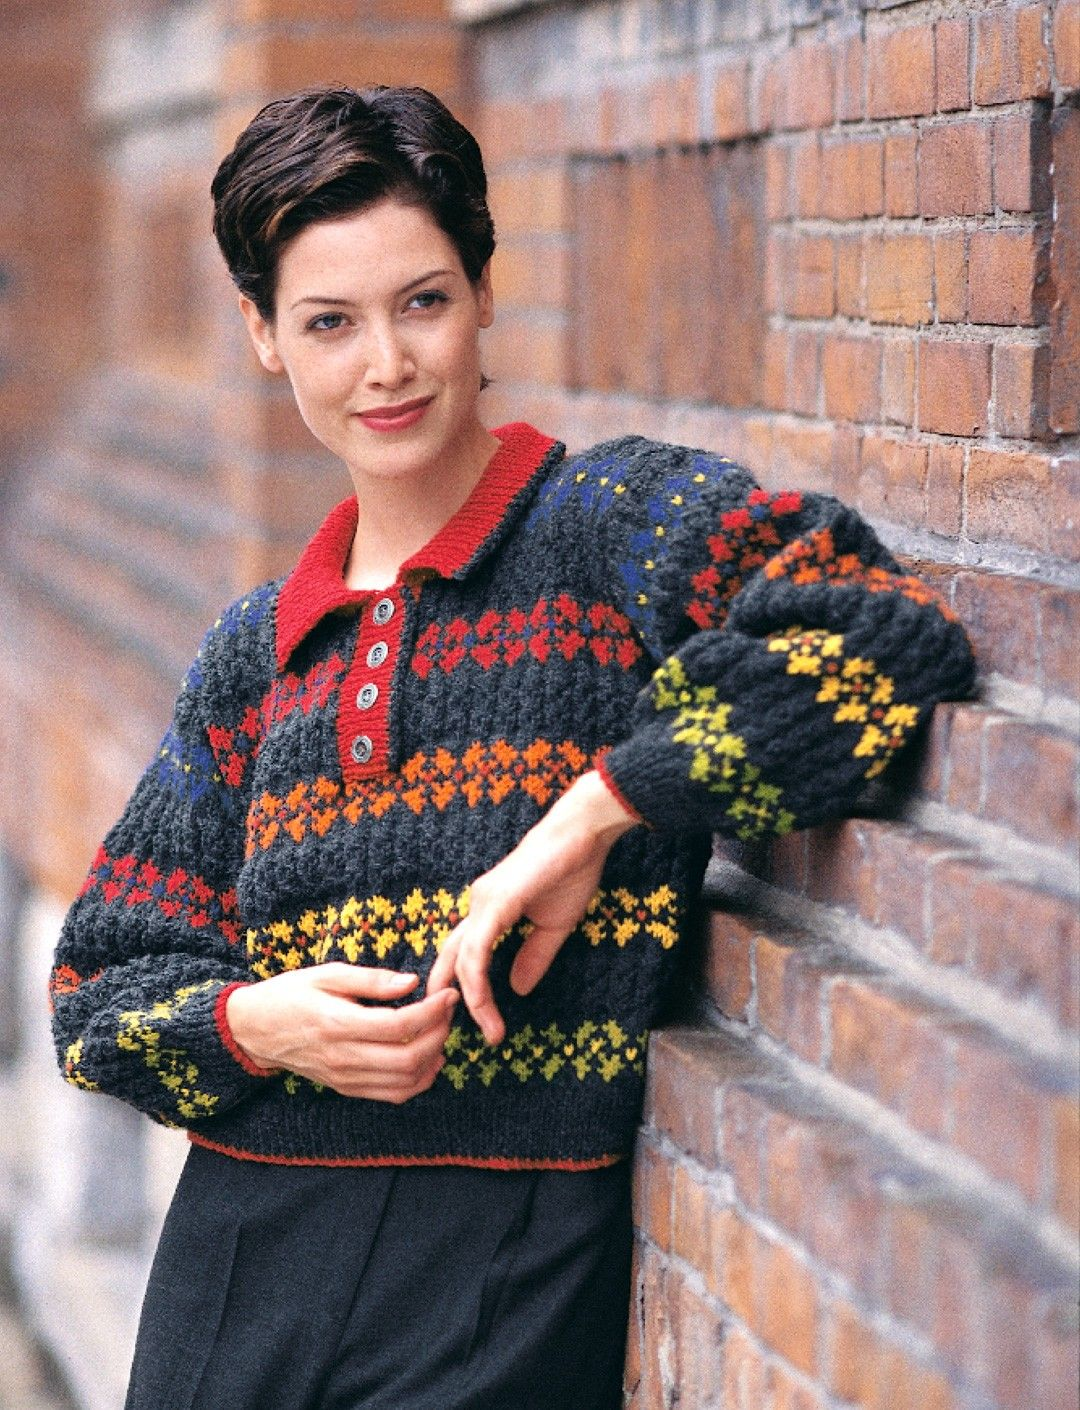 Yarnspirations patons colorful polo neck patterns find this pin and more on knit sweaters jackets vests colorful polo neck pattern by patons bankloansurffo Gallery